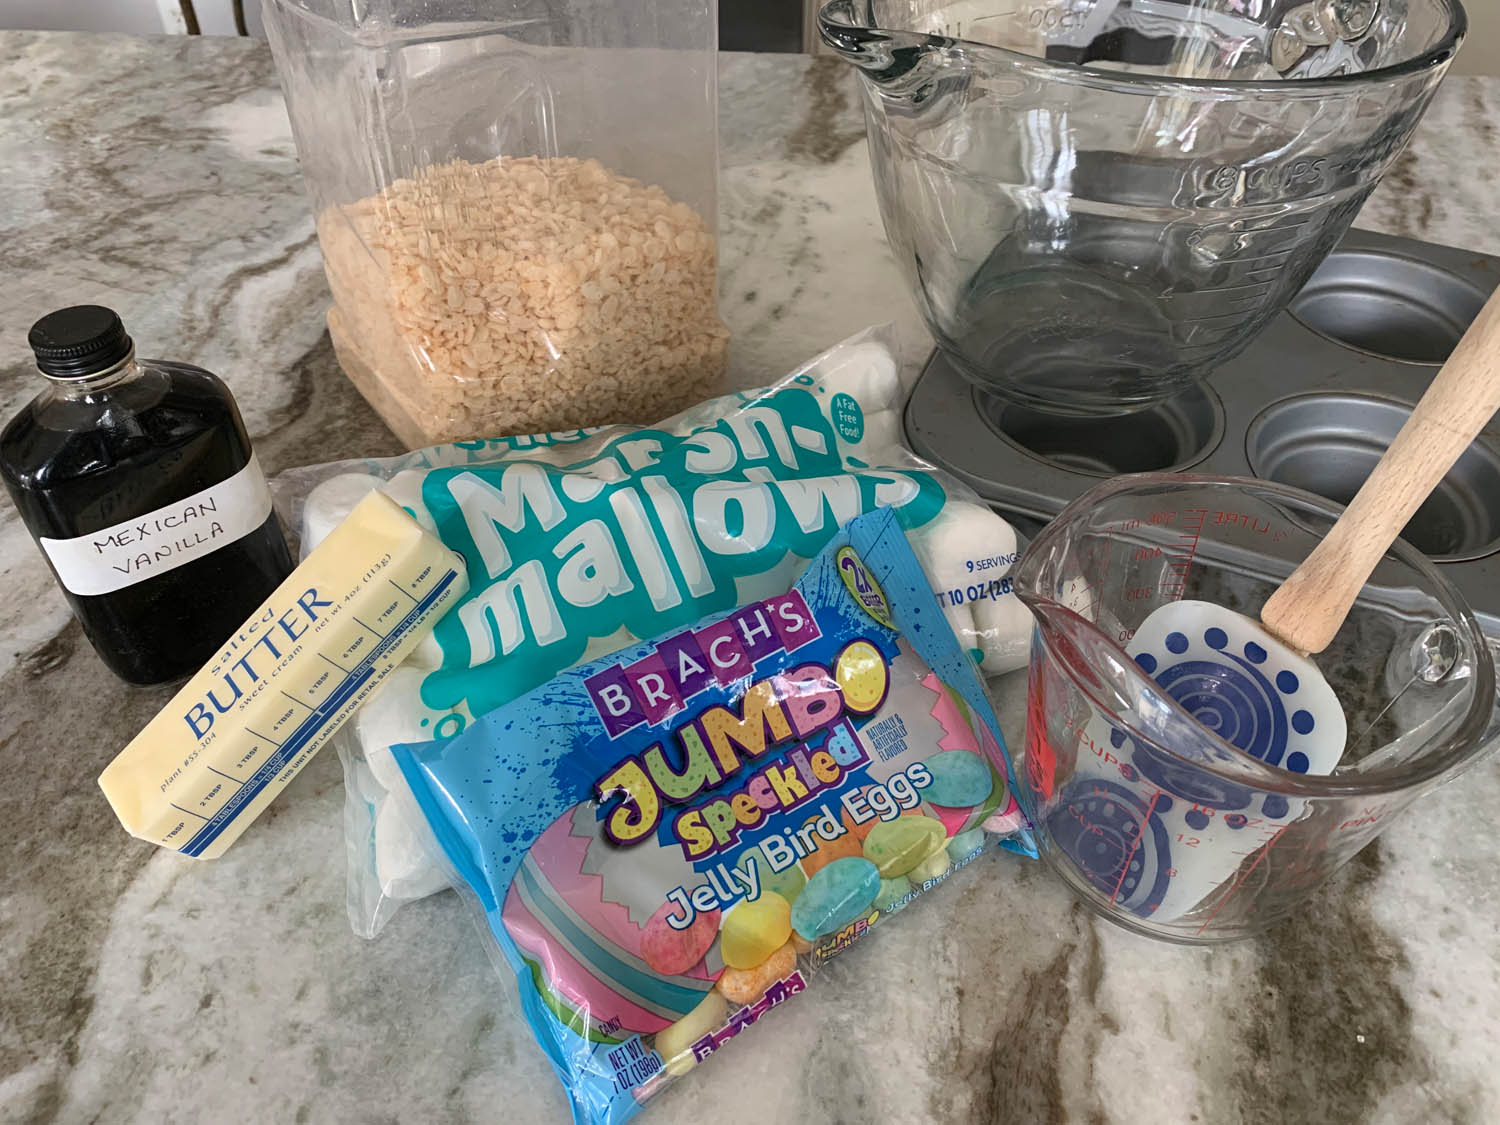 vanilla, Rice Crispies cereal, butter, marshmallows, measuring cups, muffin tin, and jelly bird eggs ingredients for Easter Nests made from Rice Crispy Treats